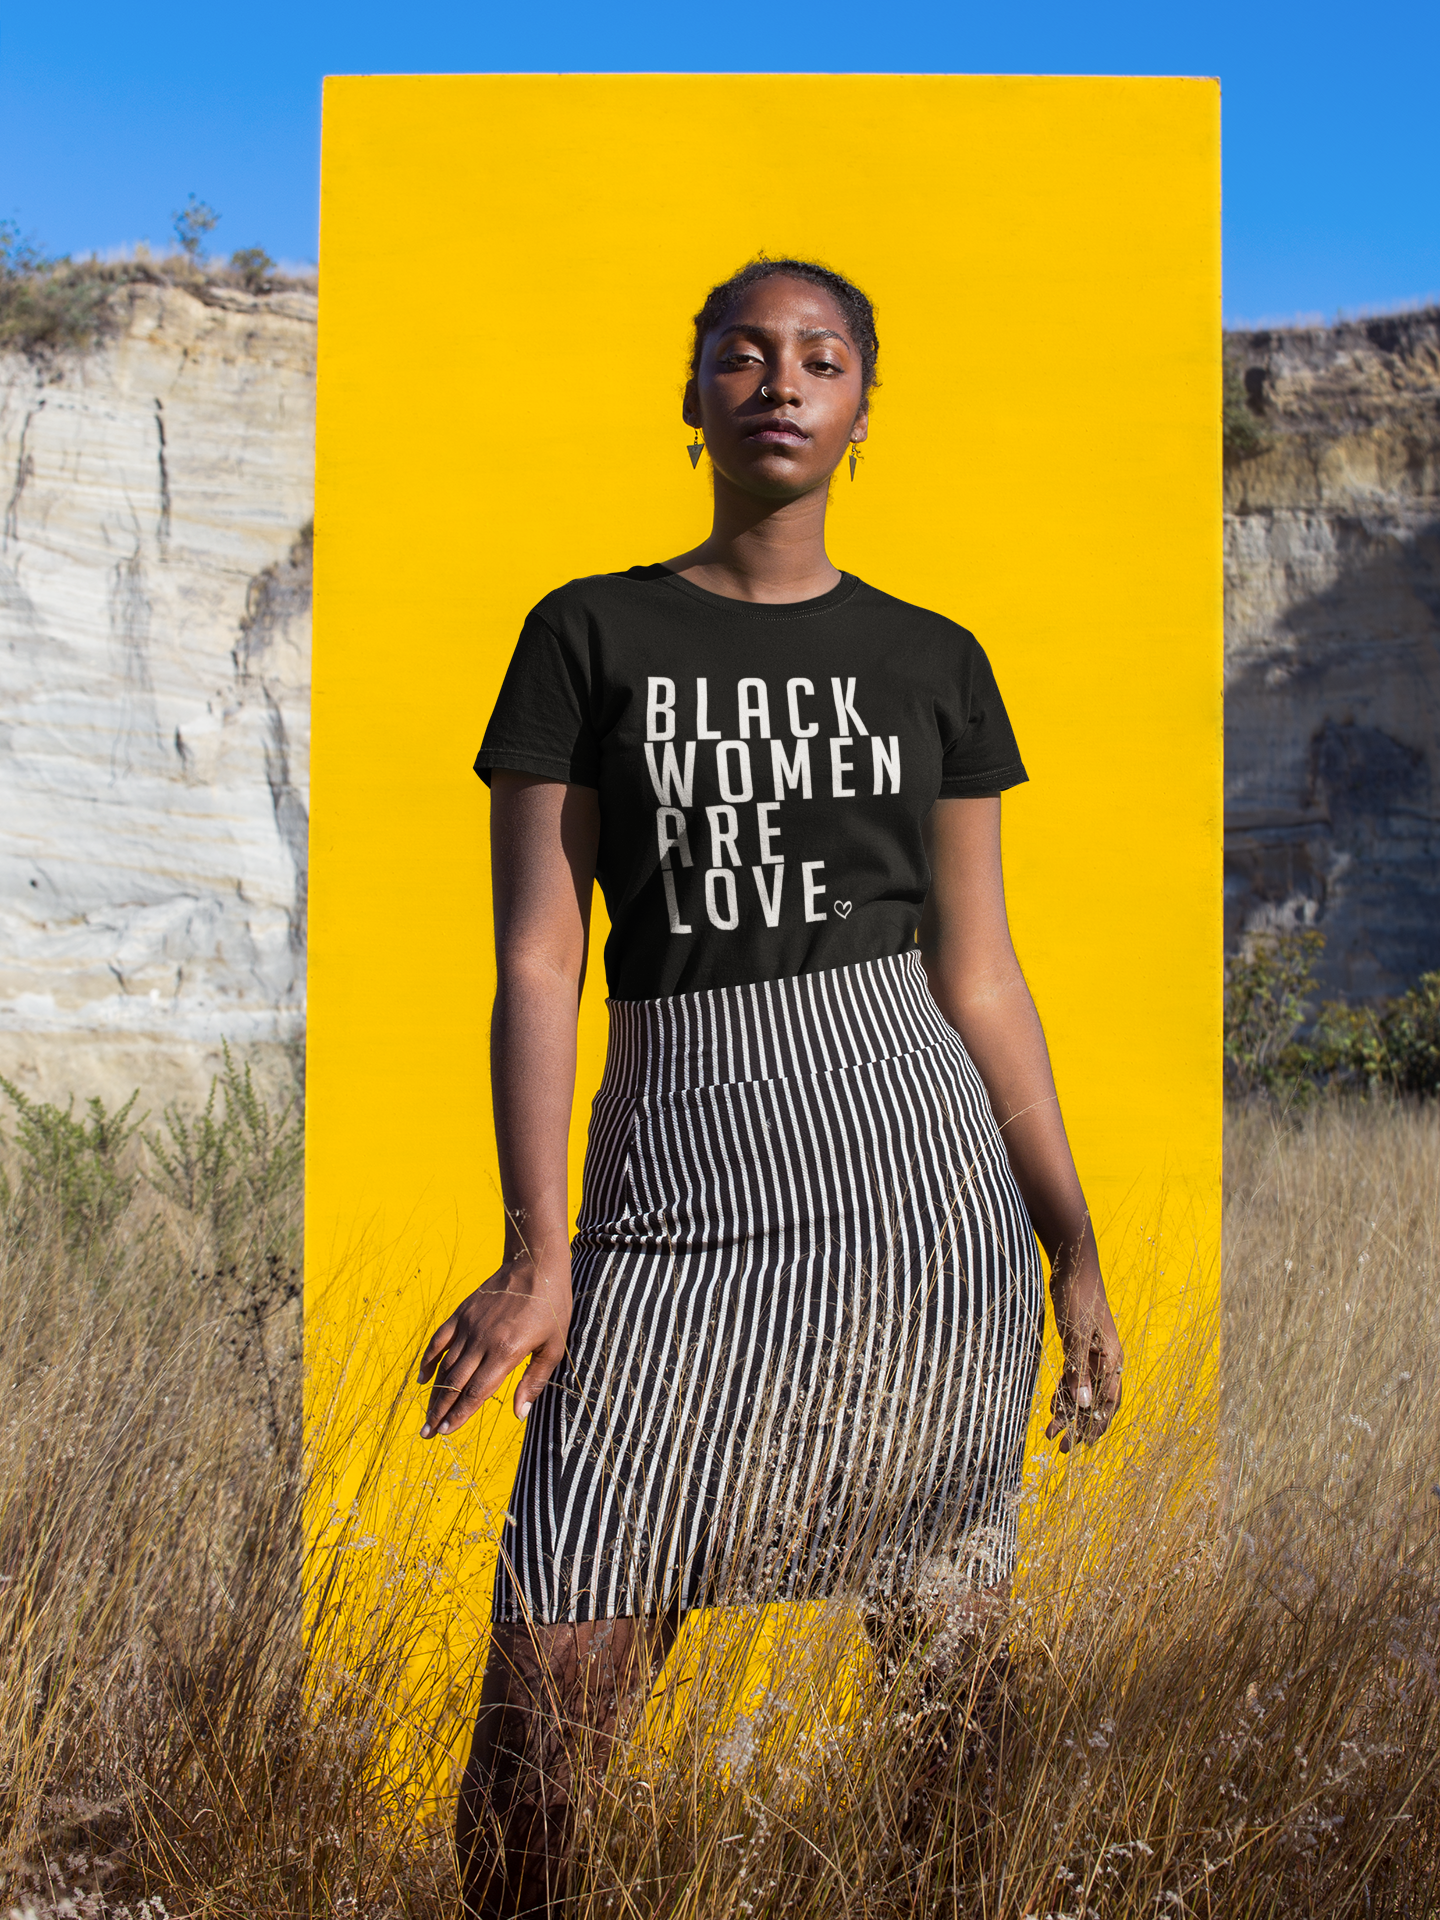 This is about us. - As Black women.As Whole Humans.As beautiful Individuals.As Love.